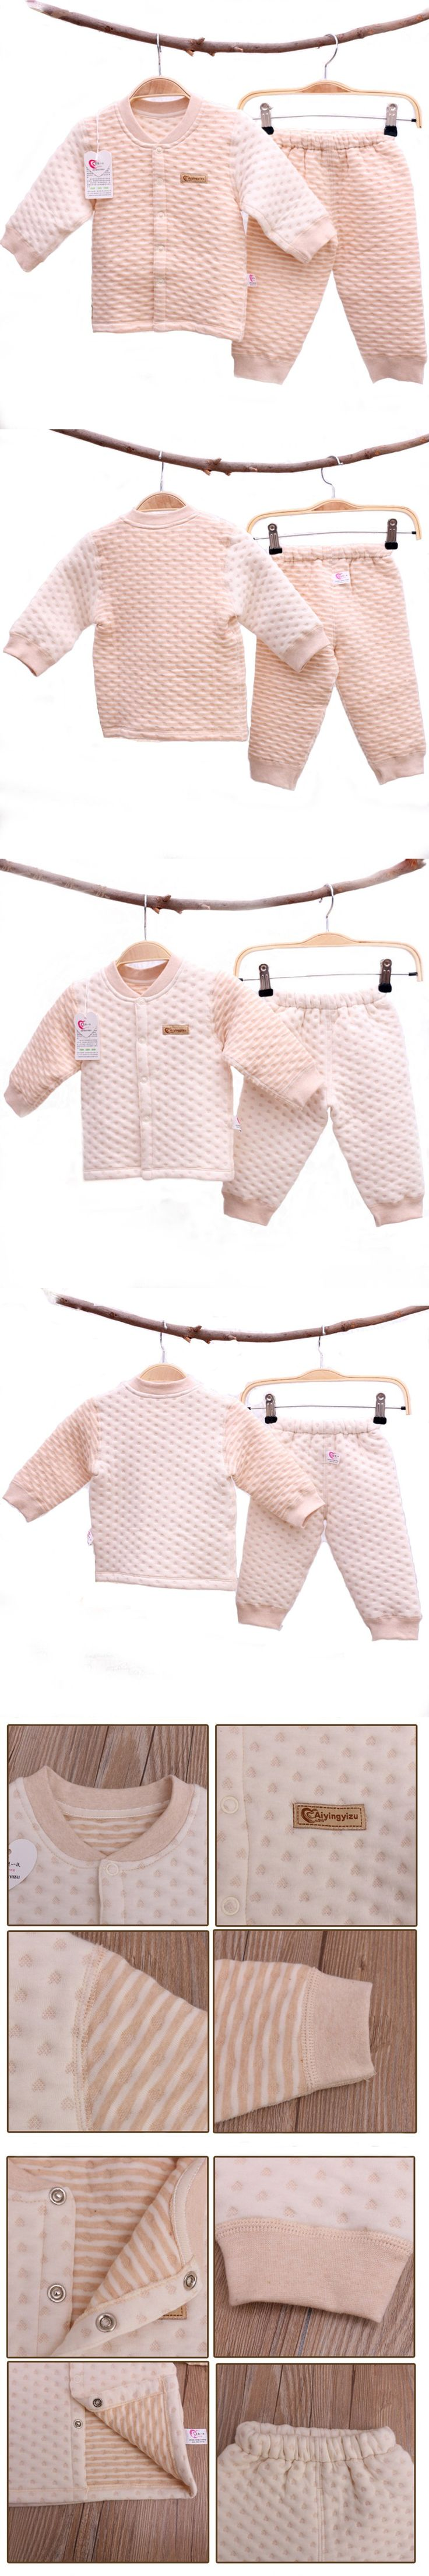 Warm Winter Newborn Baby Girl Clothes Set,Infant Boy Clothing Set For 0-2 Years Old,Safe Organic Cotton Baby Products YJM206